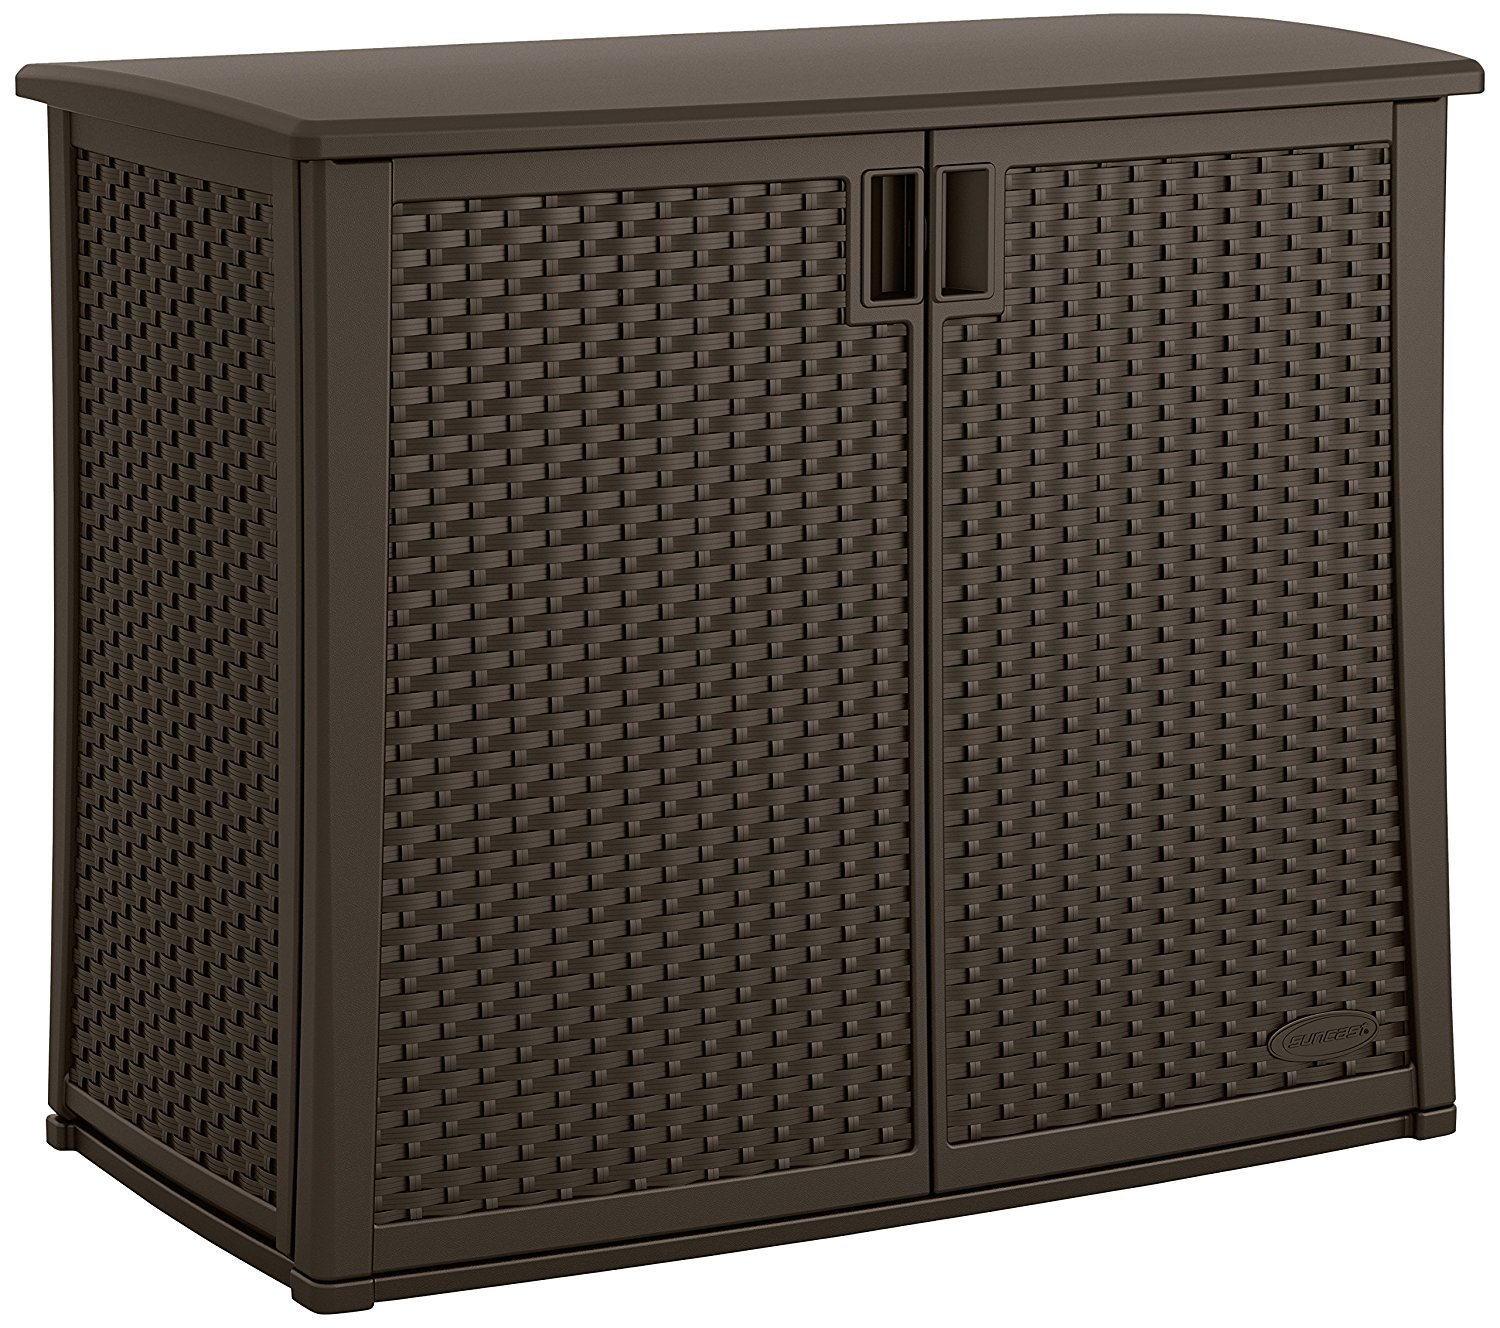 Top Selling Highest Quality Dark Brown 97 Gallon Double Wide Doors Two Large Storage Shelves Organizers- Beautiful Rattan Wicker Finish Water Resistant Roomy Durable- Perfect For Deck Garden Porch